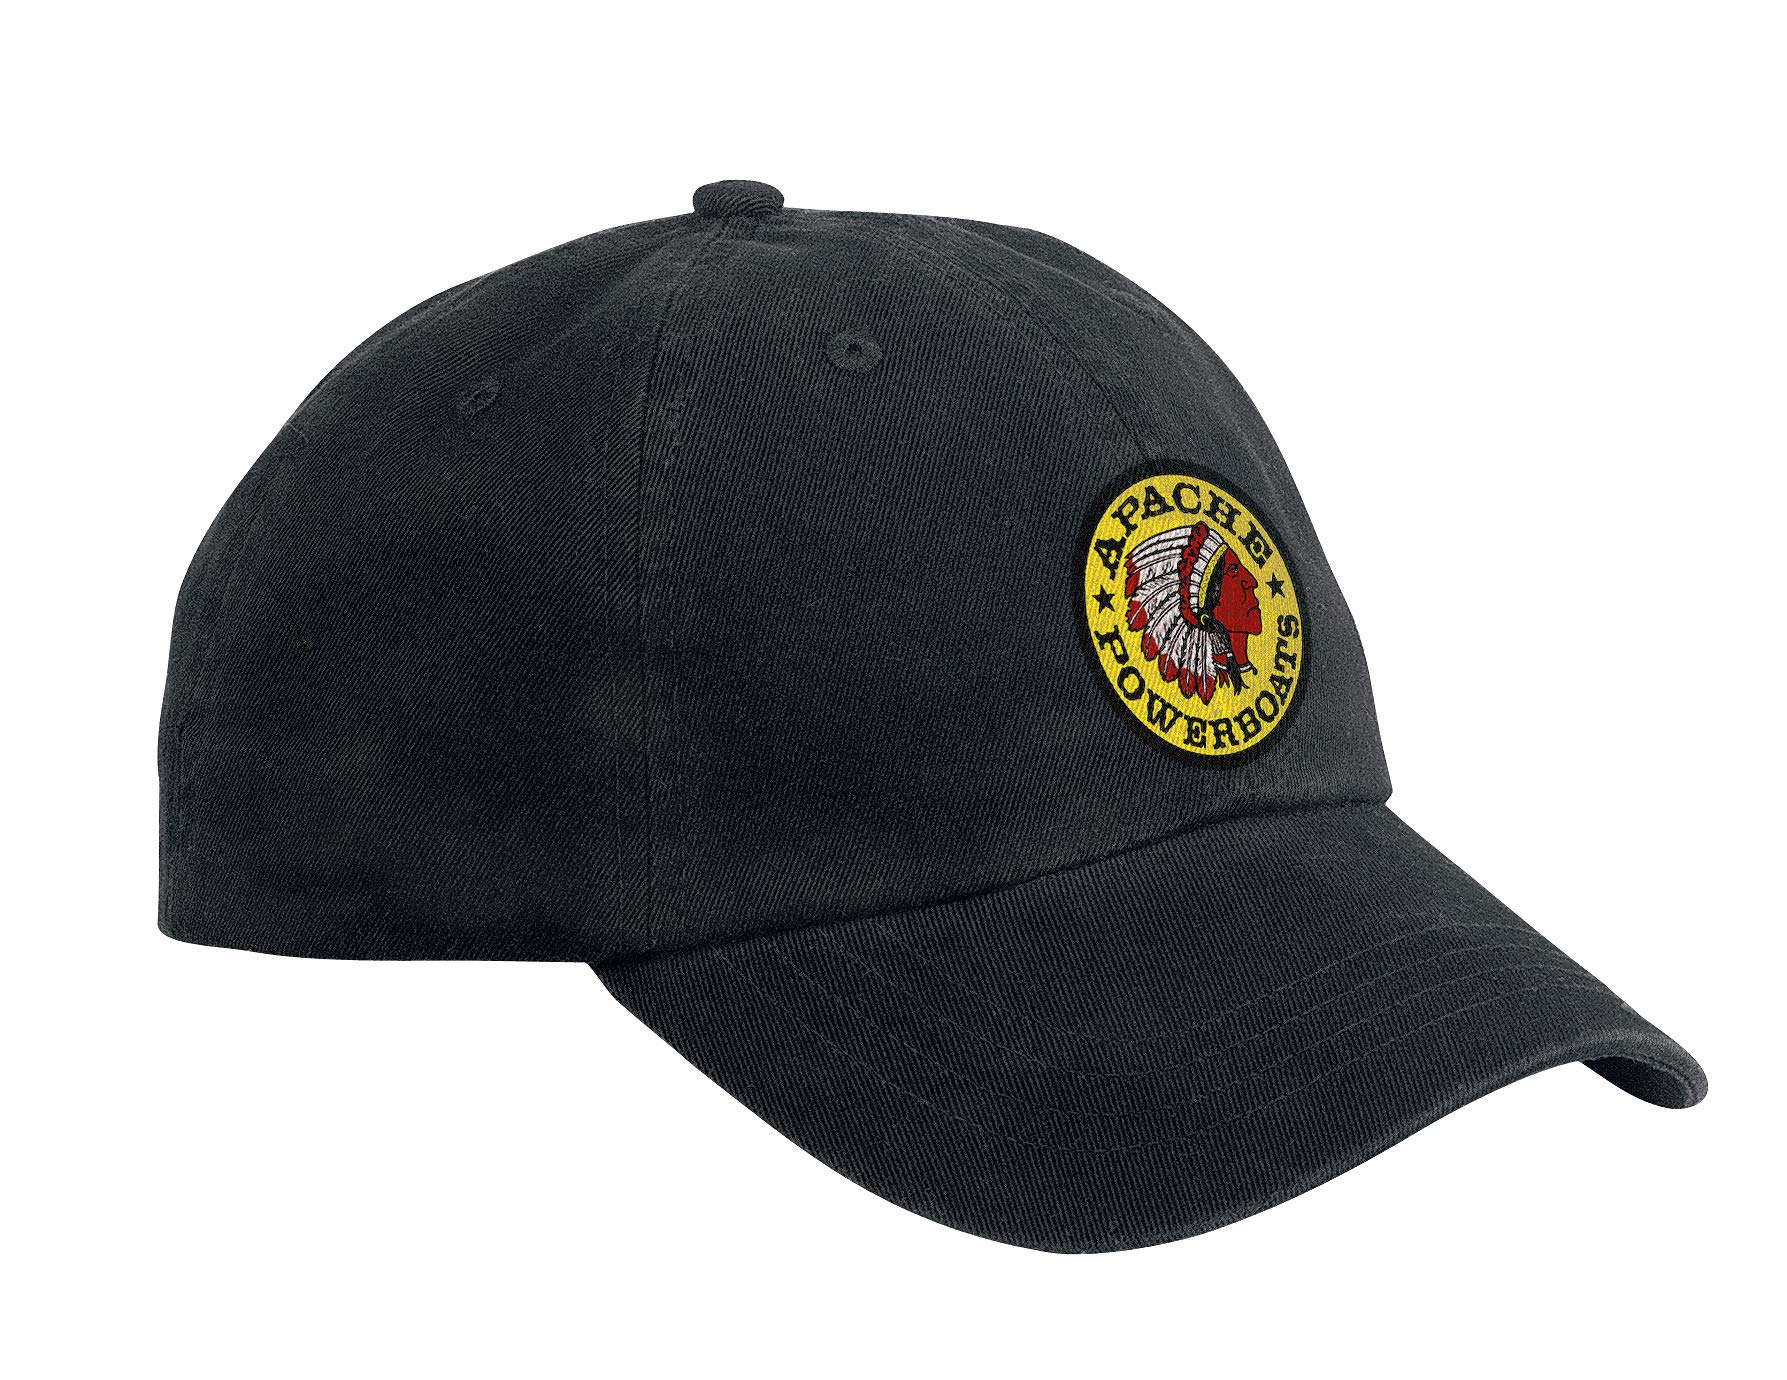 Apache Powerboats Offshore Champion Hat (Black) by Apache Powerboats